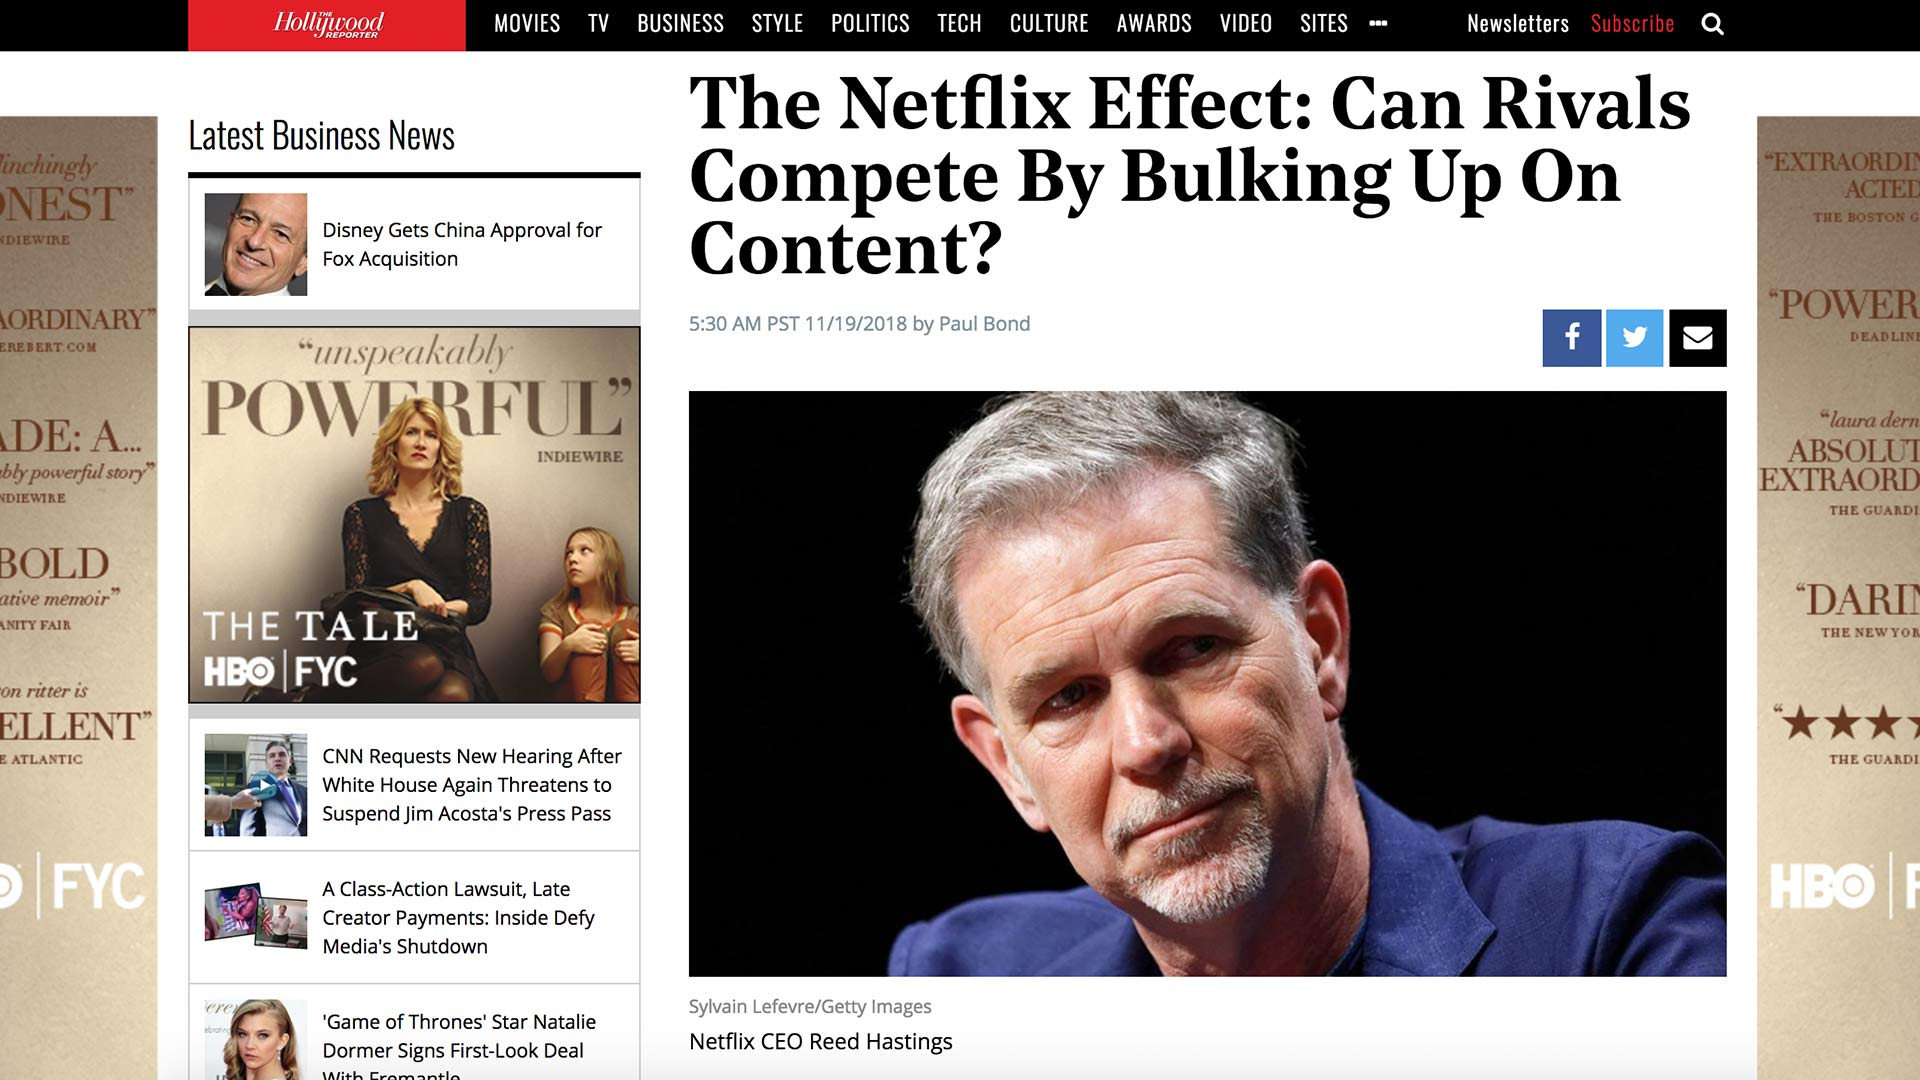 Fairness Rocks News The Netflix Effect: Can Rivals Compete By Bulking Up On Content?